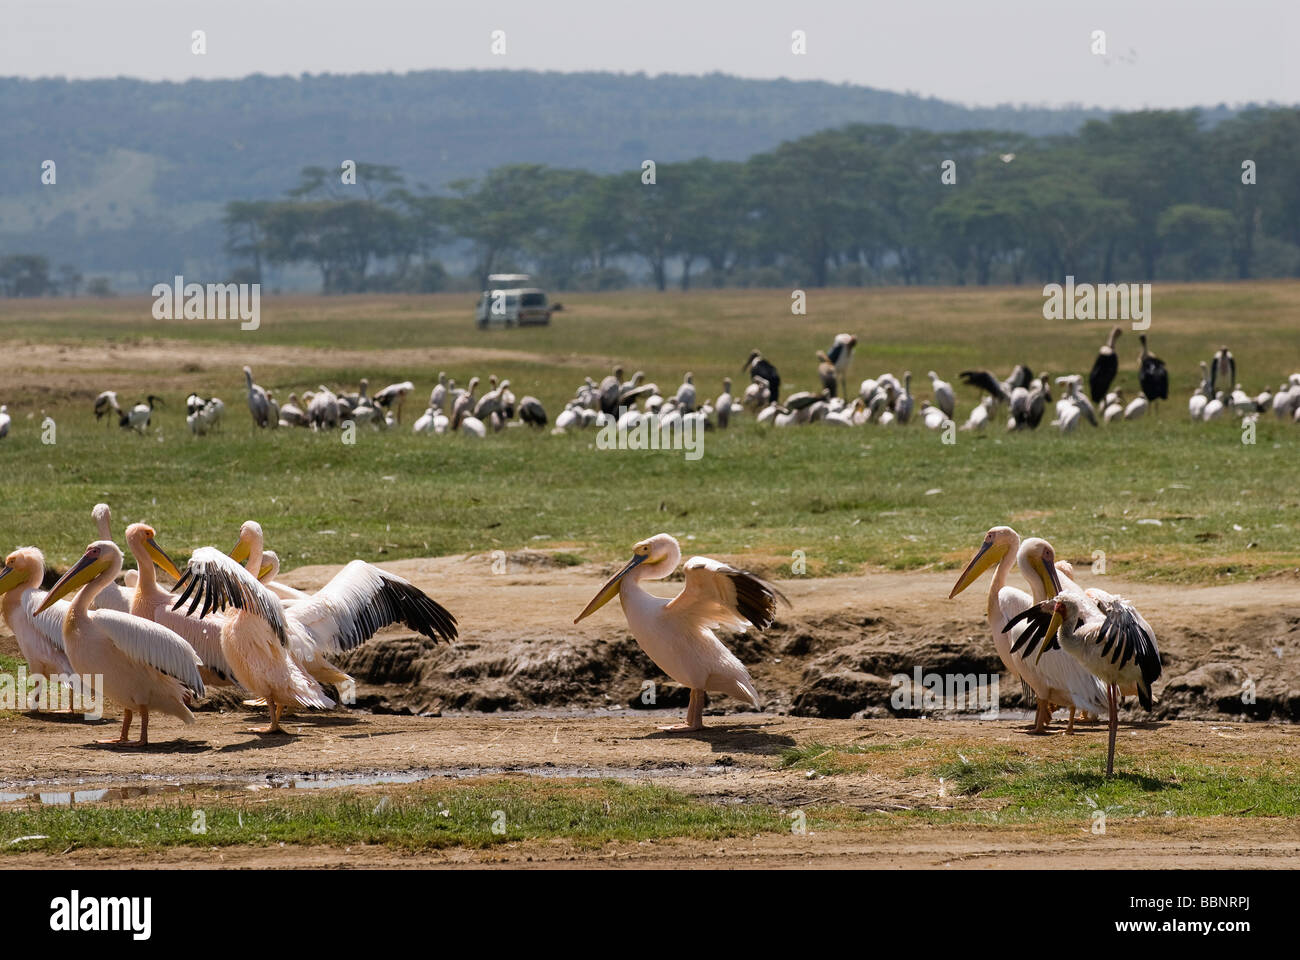 great white Pelicanus PELECANUS ONOCROTALUS NAKURU NATIONAL PARK KENYA East Africa - Stock Image